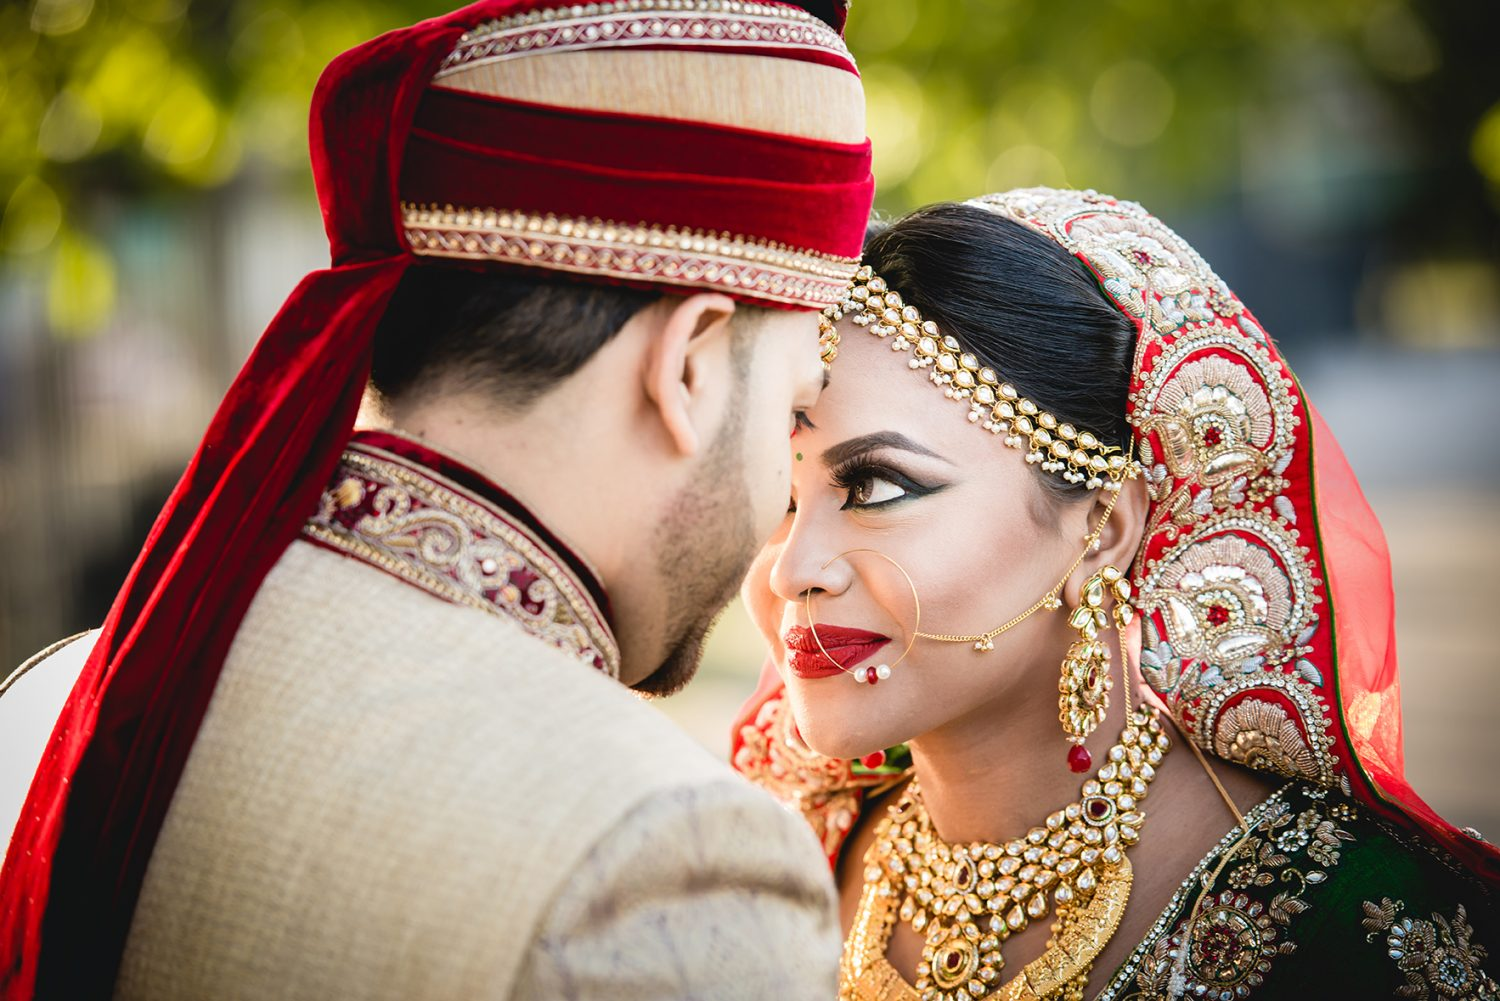 south_asian_wedding_photography_dhoom_studio_new_york23-e1573075244114 SOUTH ASIAN WEDDINGS